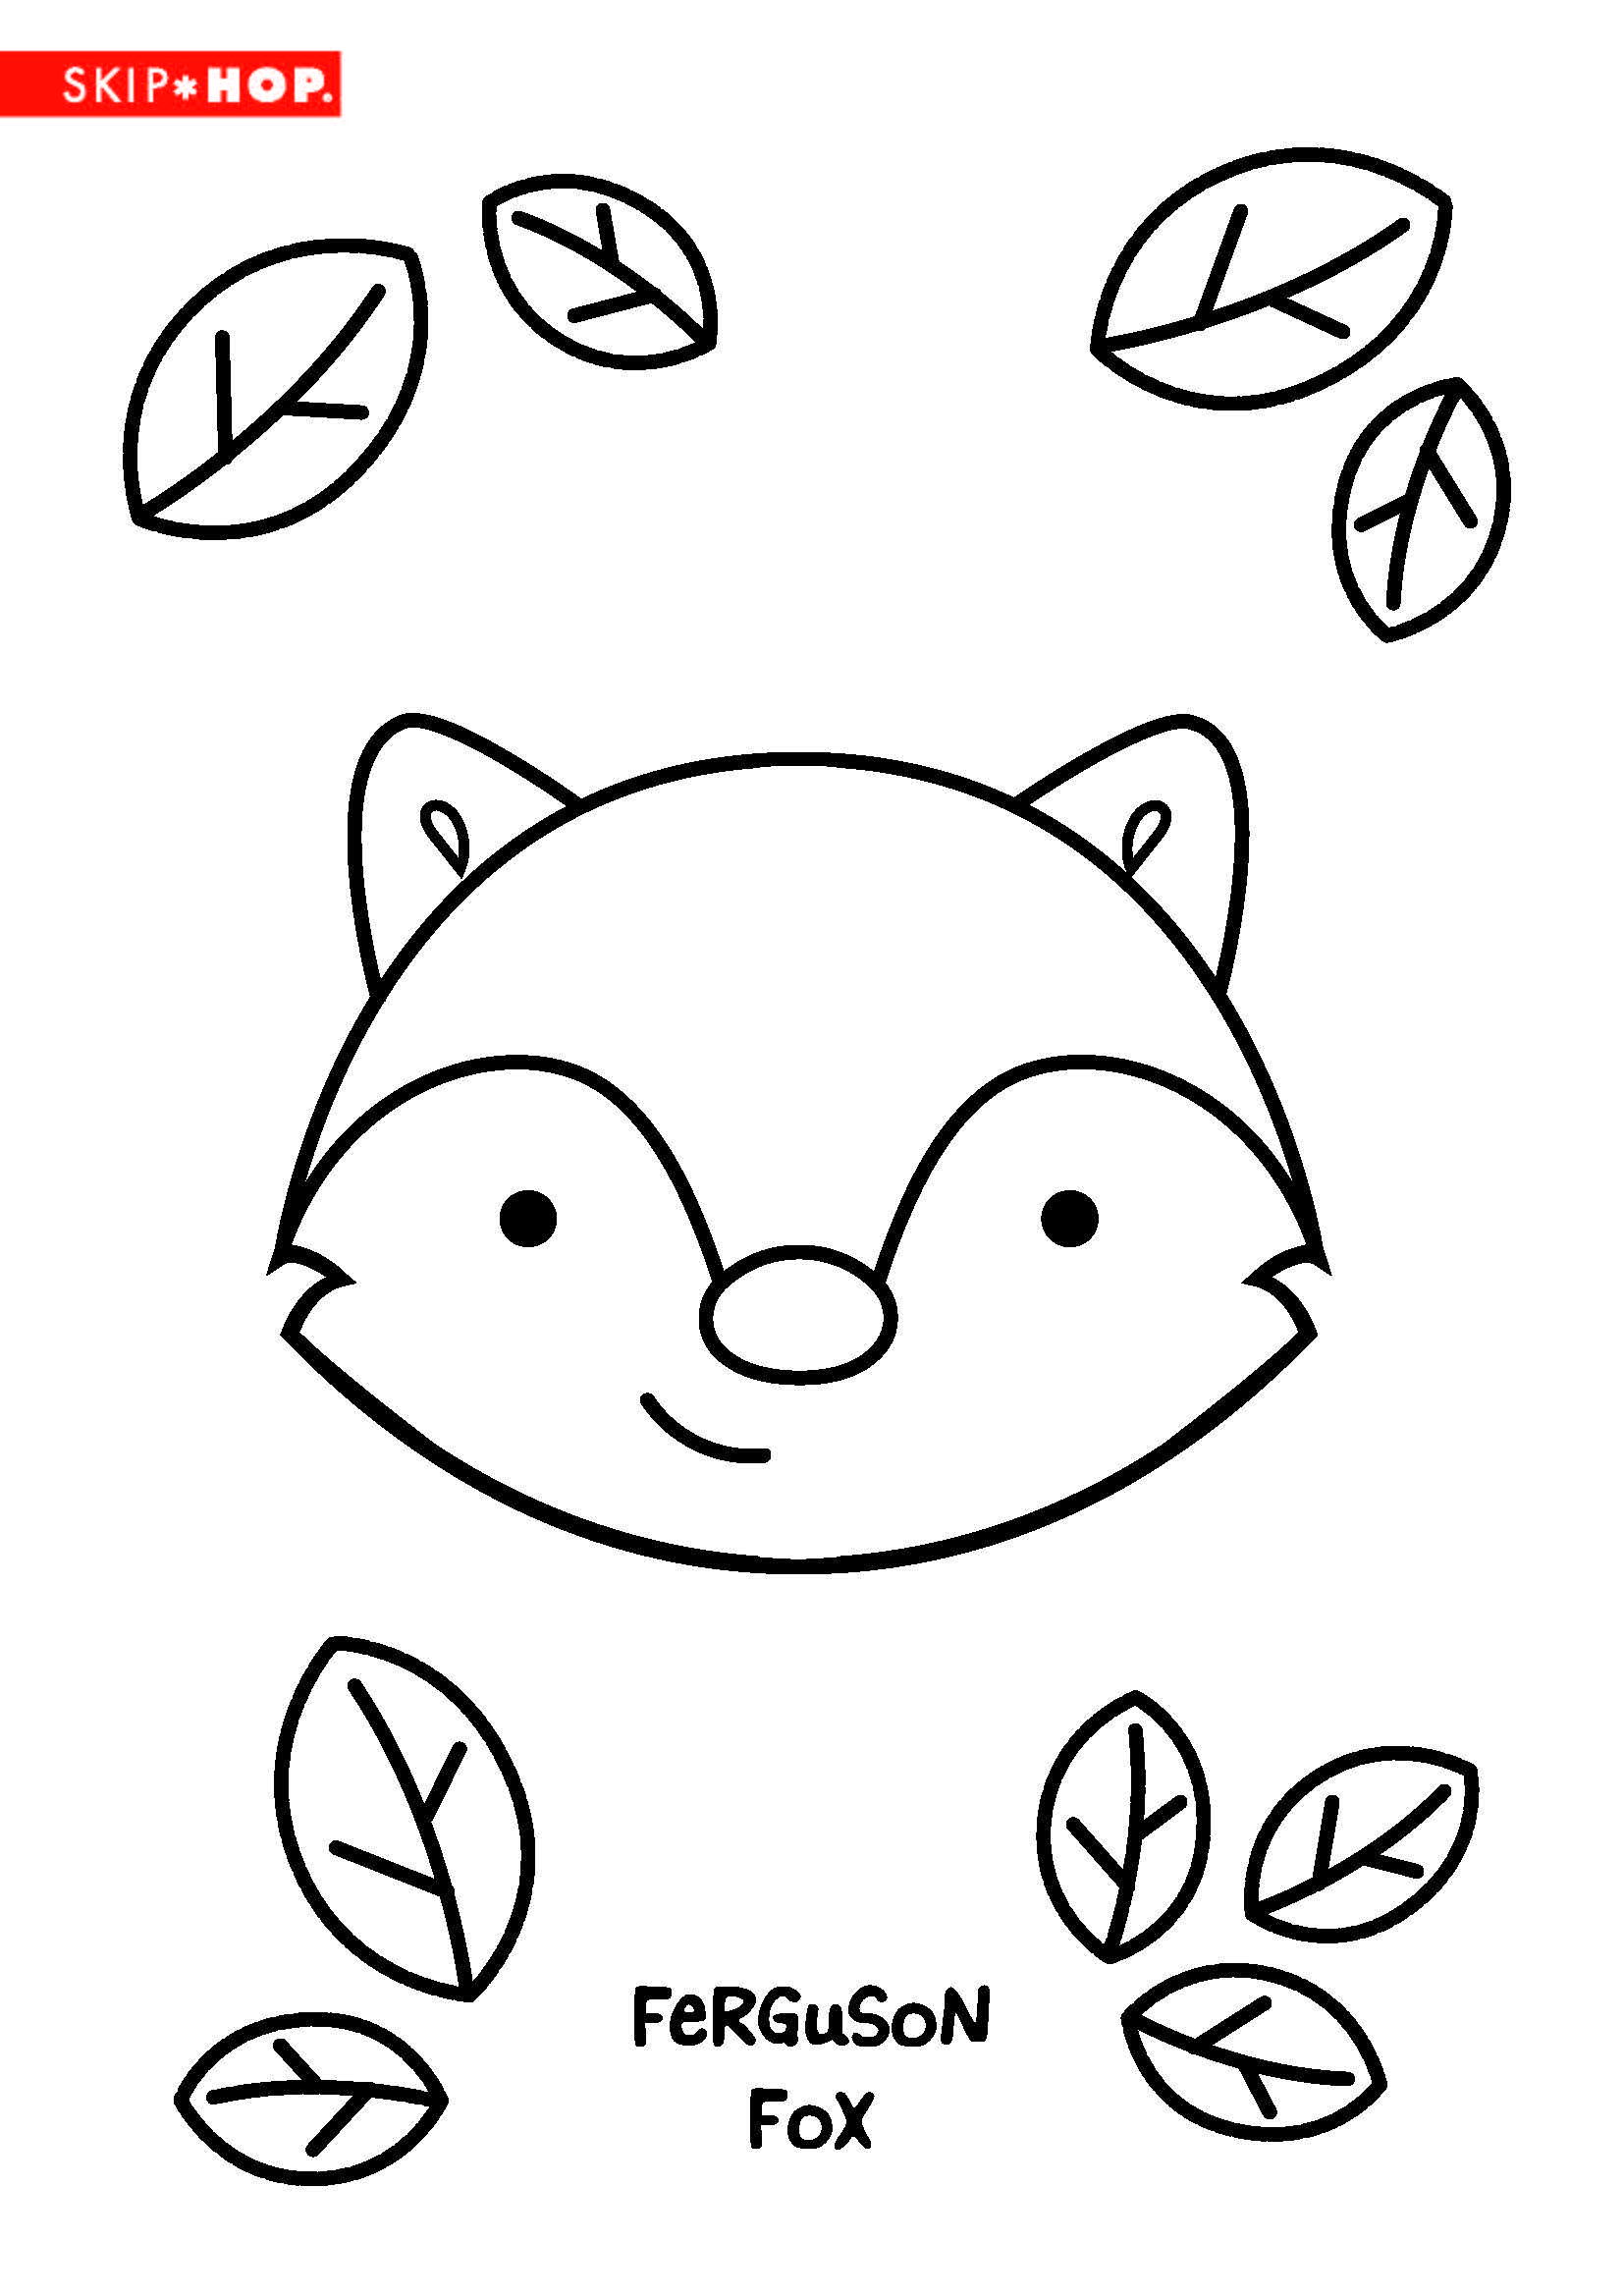 Ferguson Fox Coloring Sheet Kids Coloring Book Fun Crafts For Kids Crafts For Boys